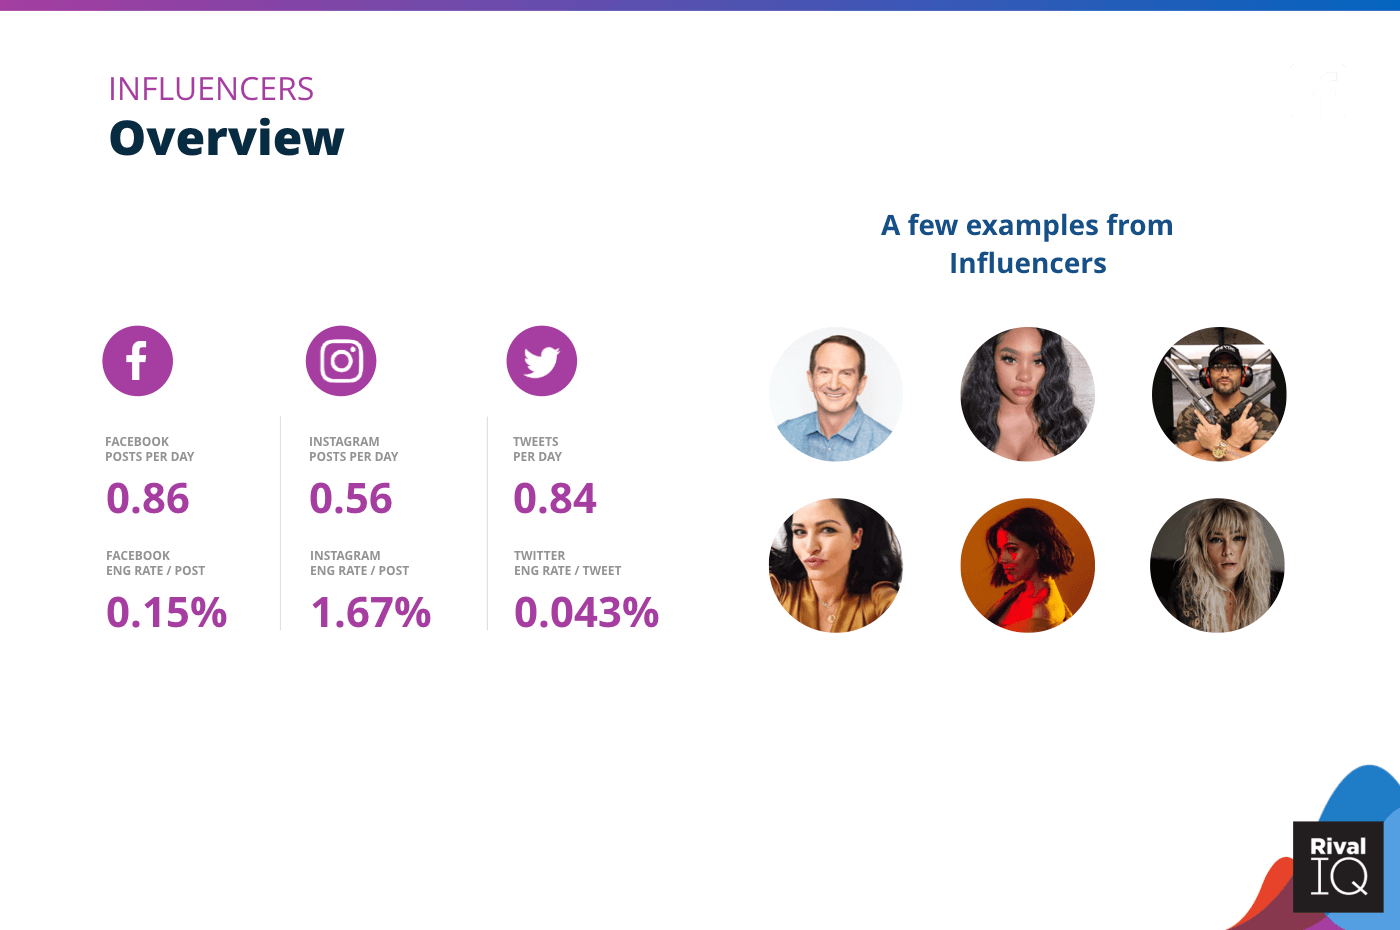 Overview of all benchmarks, Influencers